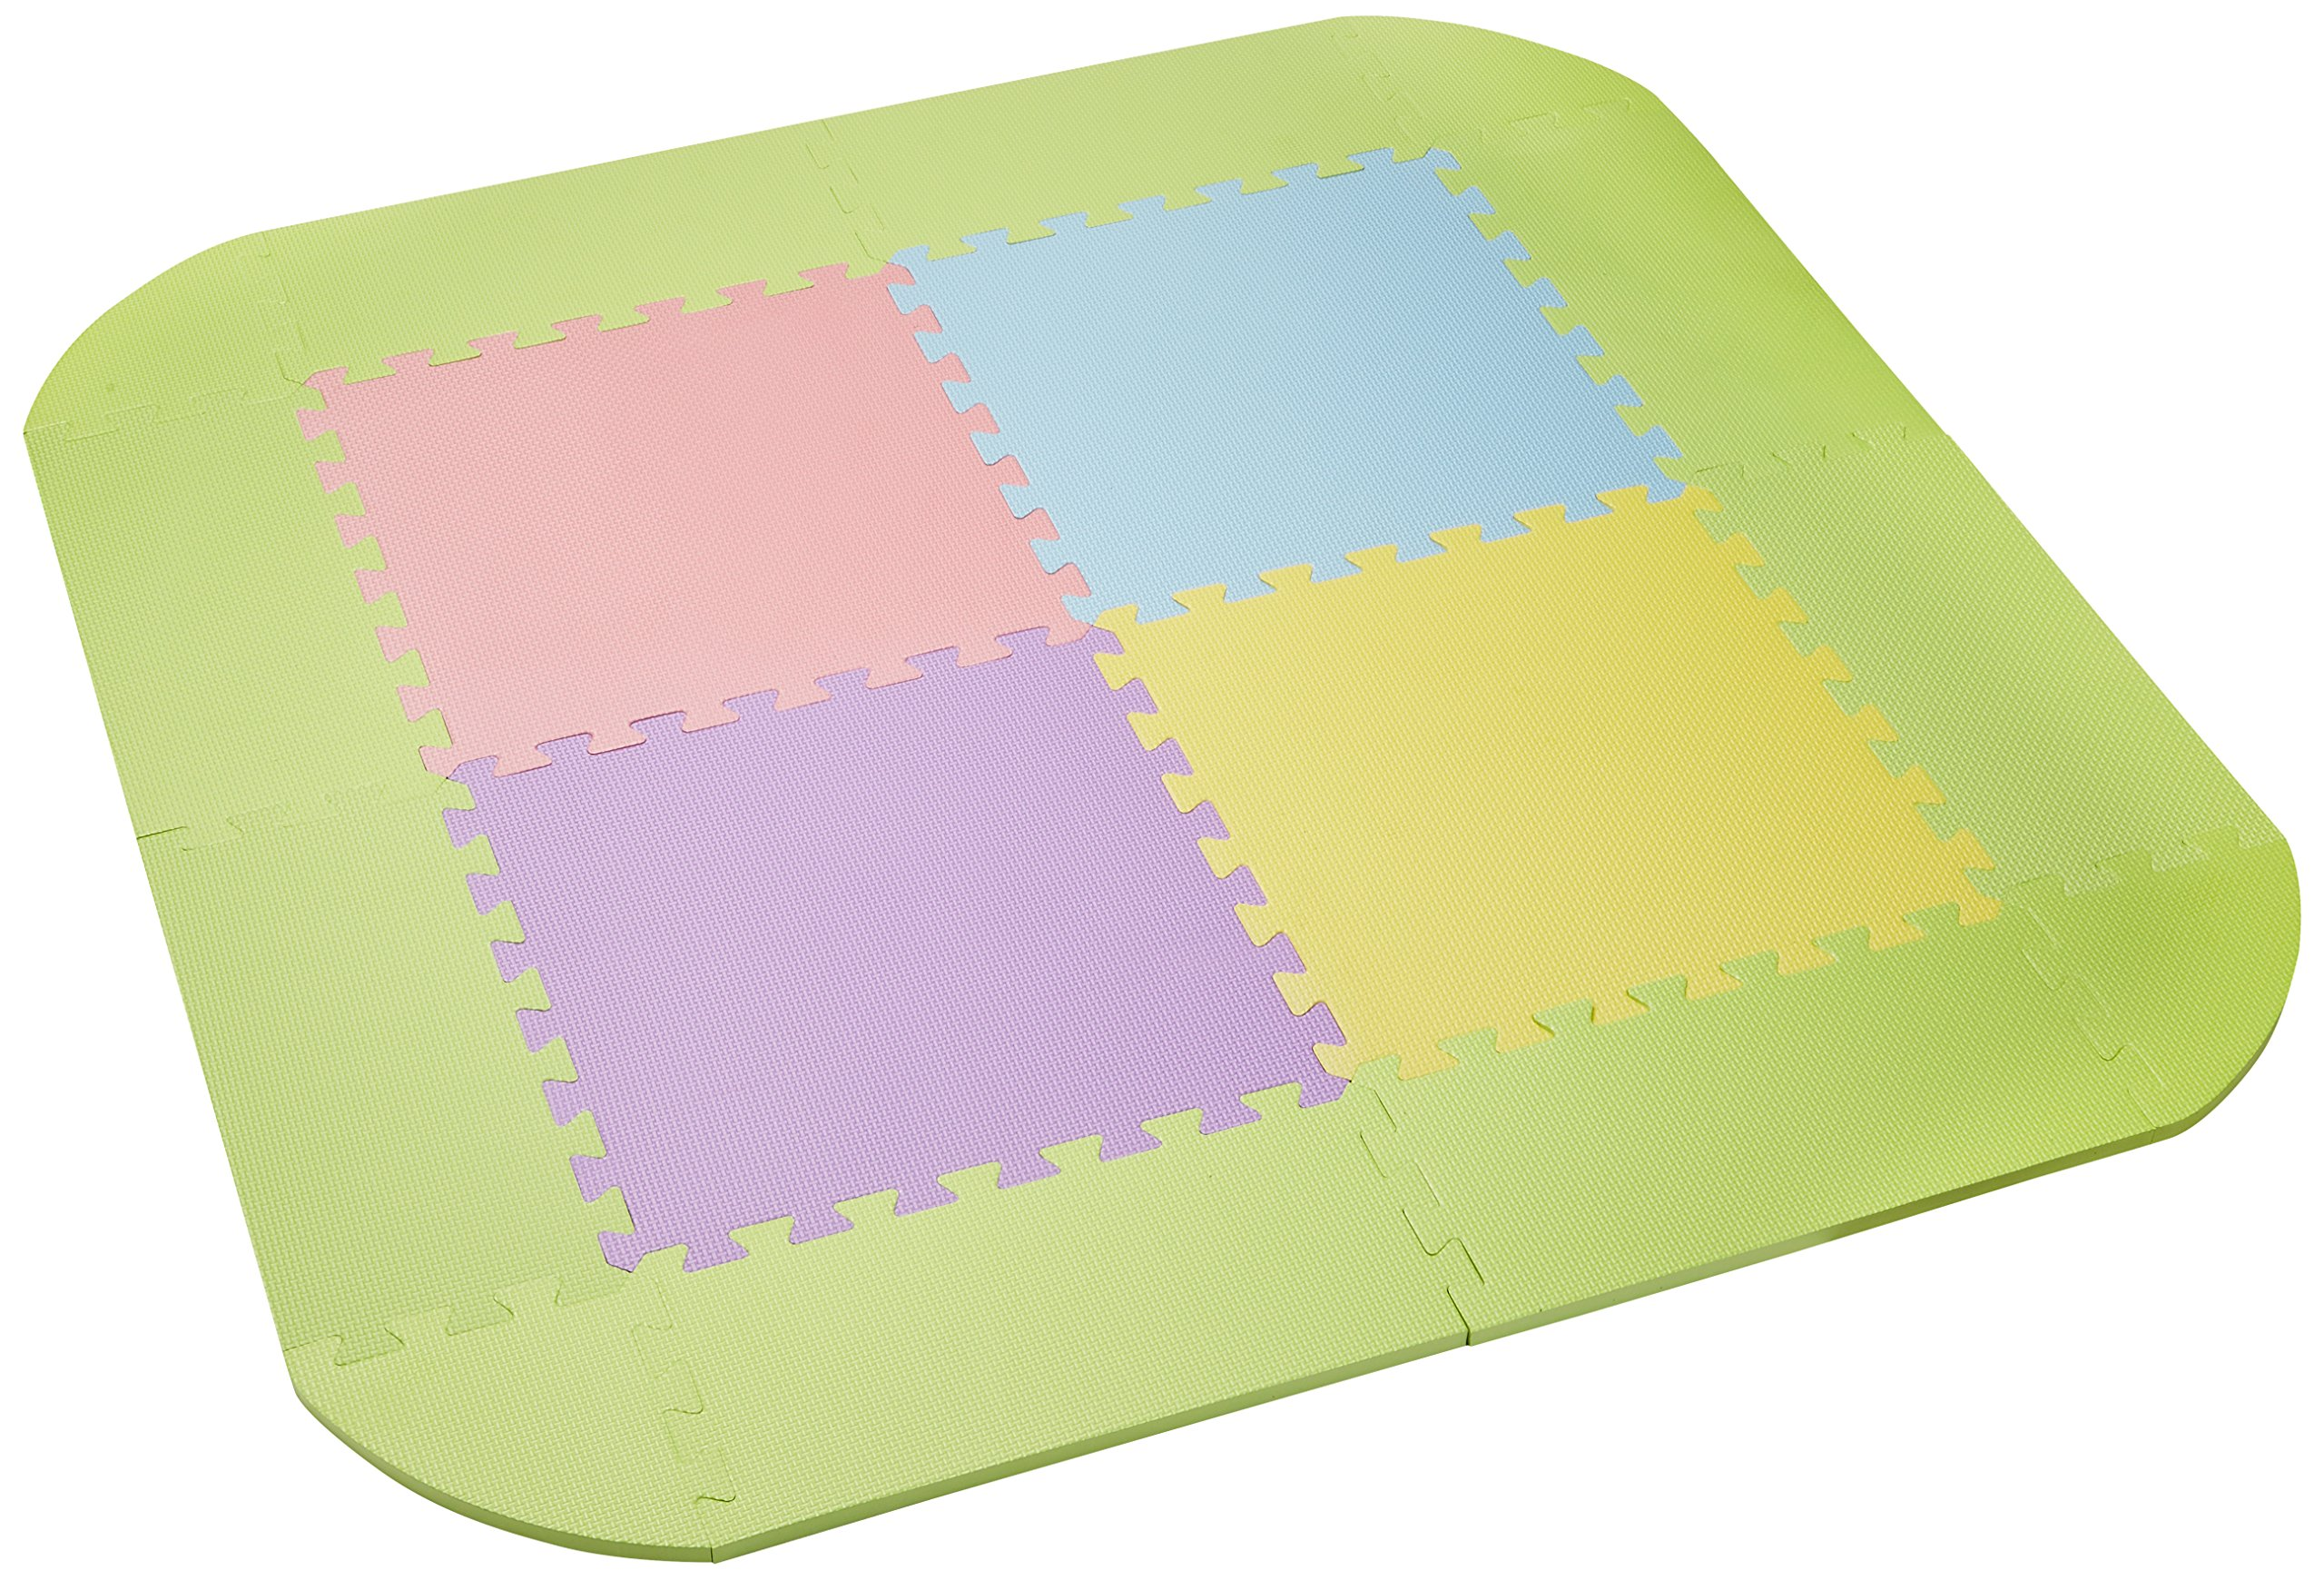 Japan childcare musical Kids Land Square dedicated mat width 116 ~ depth 116 ~ height 1.5cm 5010012001 6 months to 3 years and a half target musical kids land Square shapeless to prevent mat